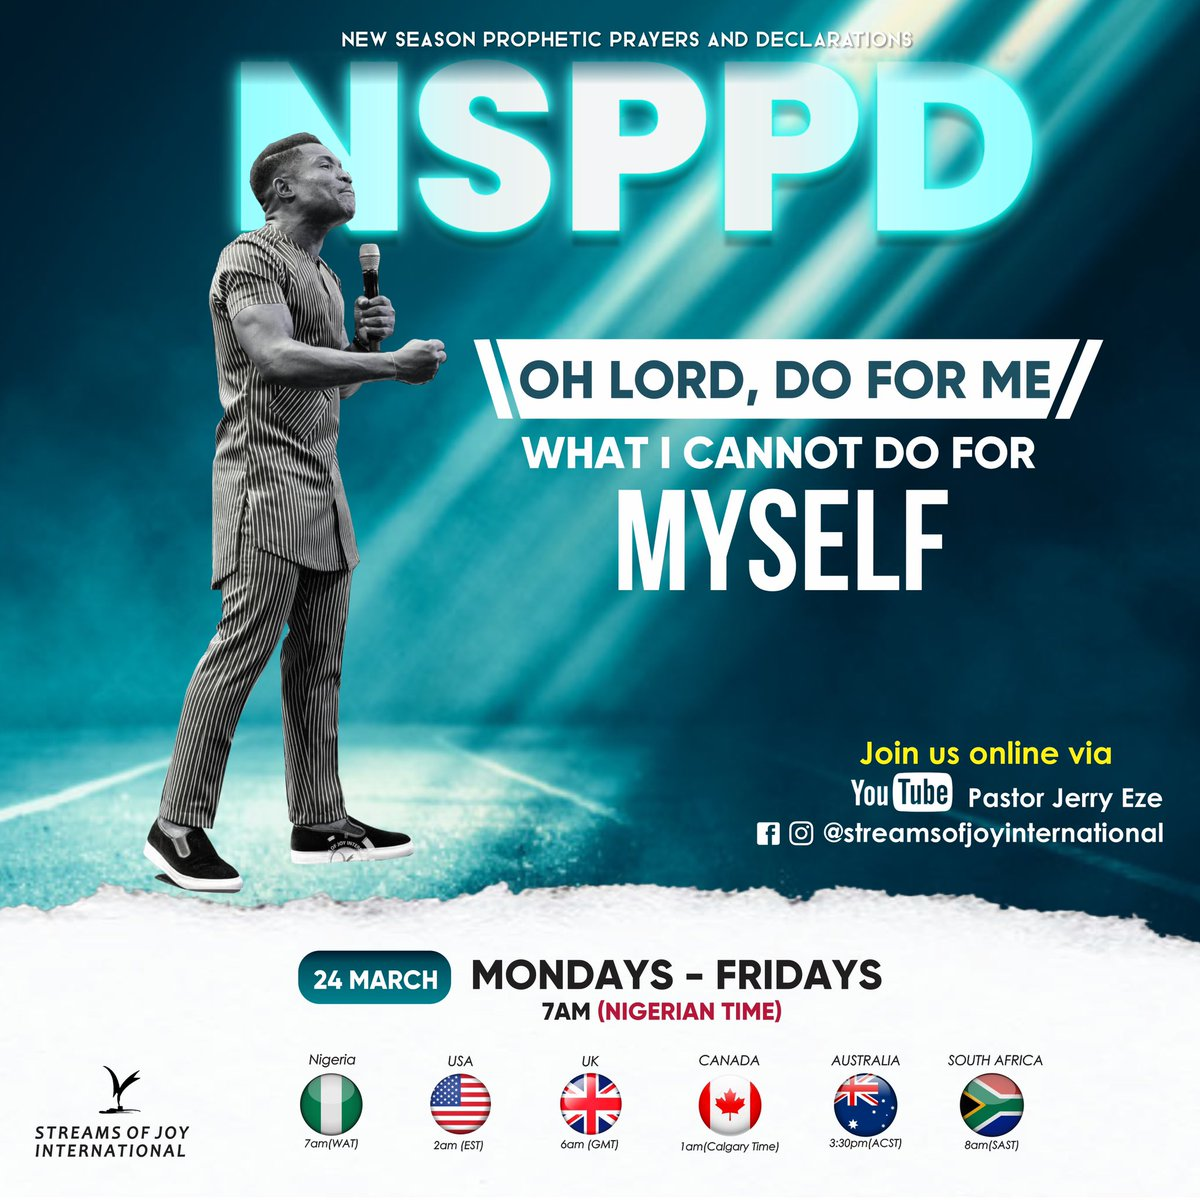 RETWEET:  THE GOD THAT ANSWERS BY FIRE IS OUR GOD WHAT GOD CANNOT DO DOES NOT EXIST  If you are ready for DIVINE ENCOUNTER at the  NSPPD ALTAR OF FIRE by 7am Nigerian time, Can you boldly write tomorrow's declaration in the comment box #NSPPD #7amFirePrayers https://t.co/5gK9gYum9r